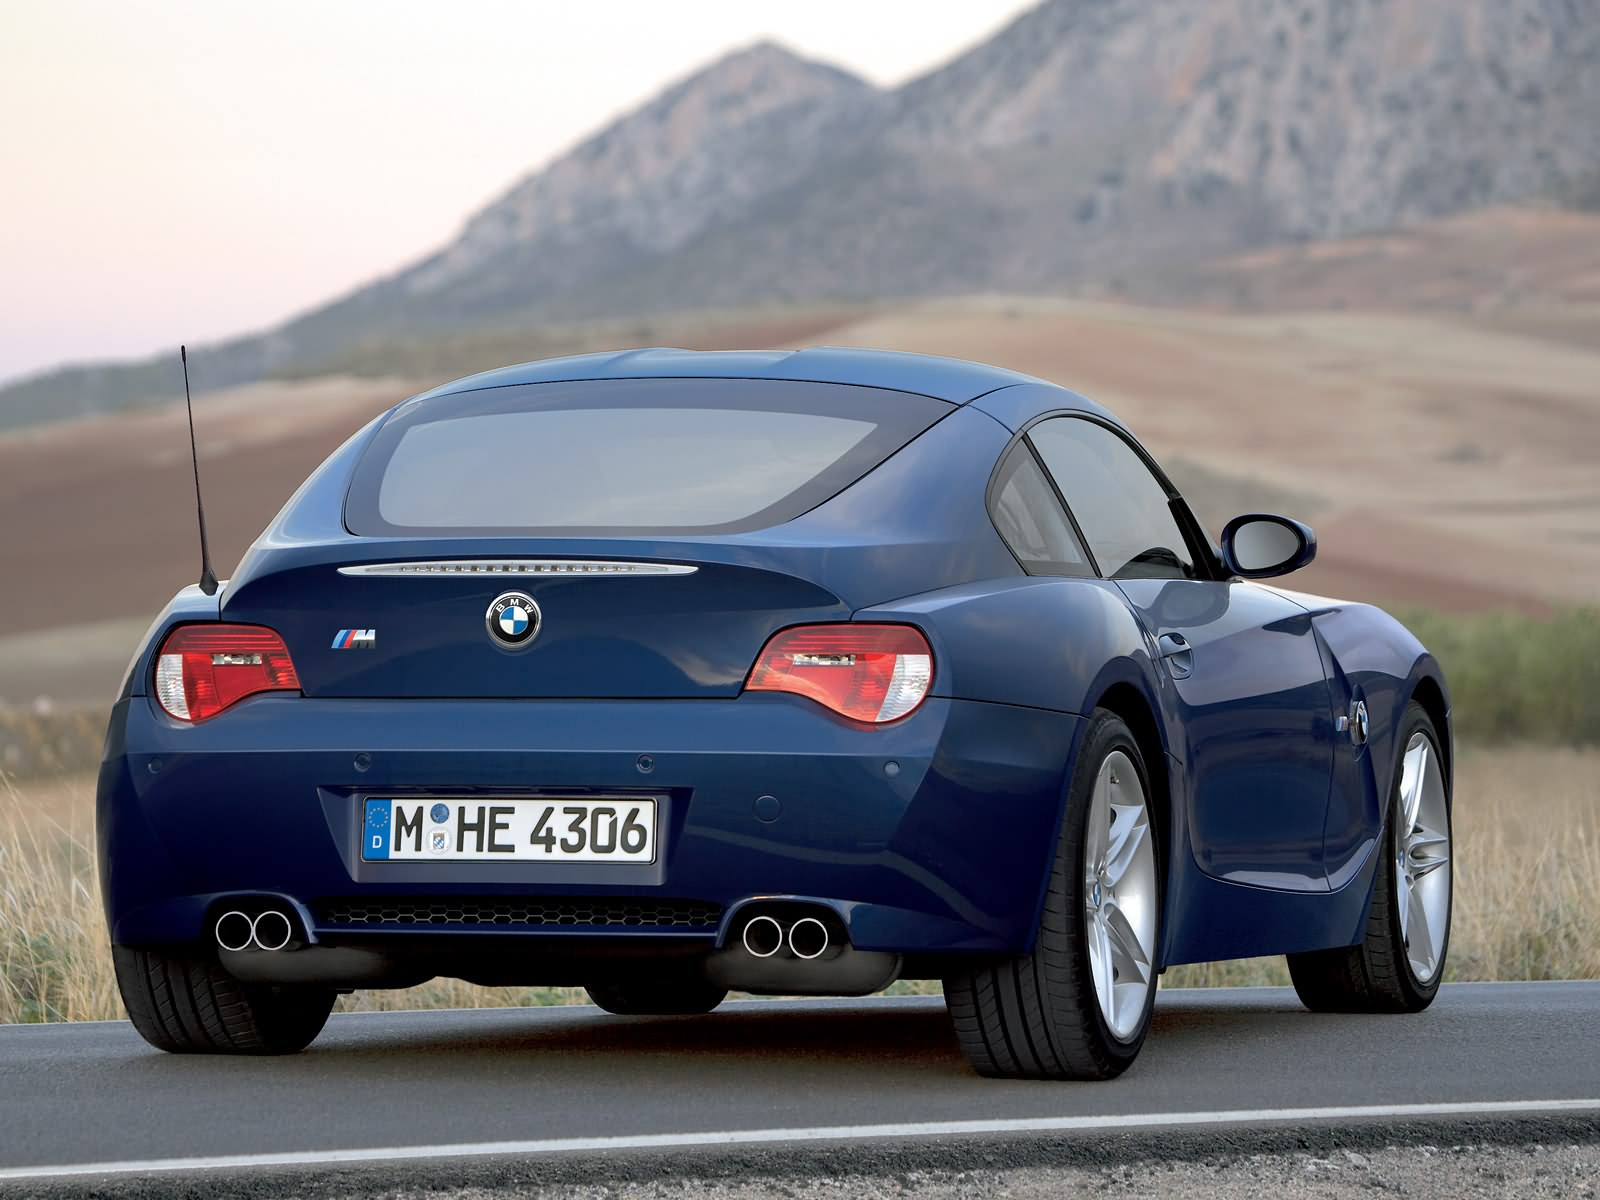 BMW Wallpapers Download Free BMW Z M Coupe Wallpapers - 2007 bmw z4 m